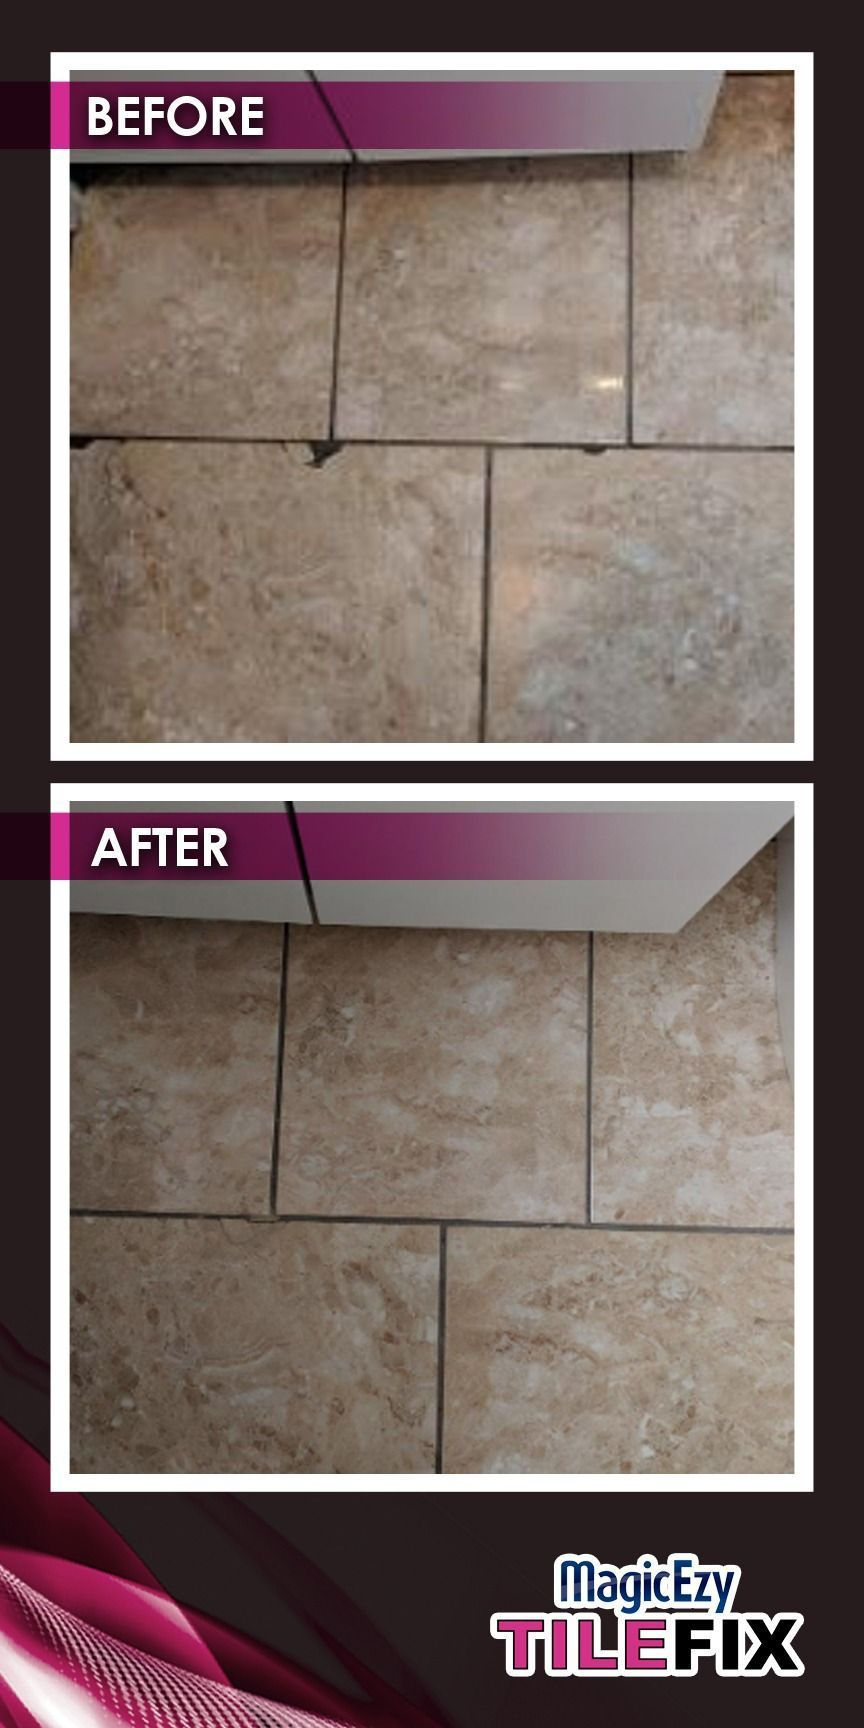 Before And After Result Of Tile Repairezy Howtorepairtiles Magic Ezy Chip Fix Marine Tex Polar Marine Tex R In 2020 Cracked Tile Repair Tile Repair Ceramic Floor Tile